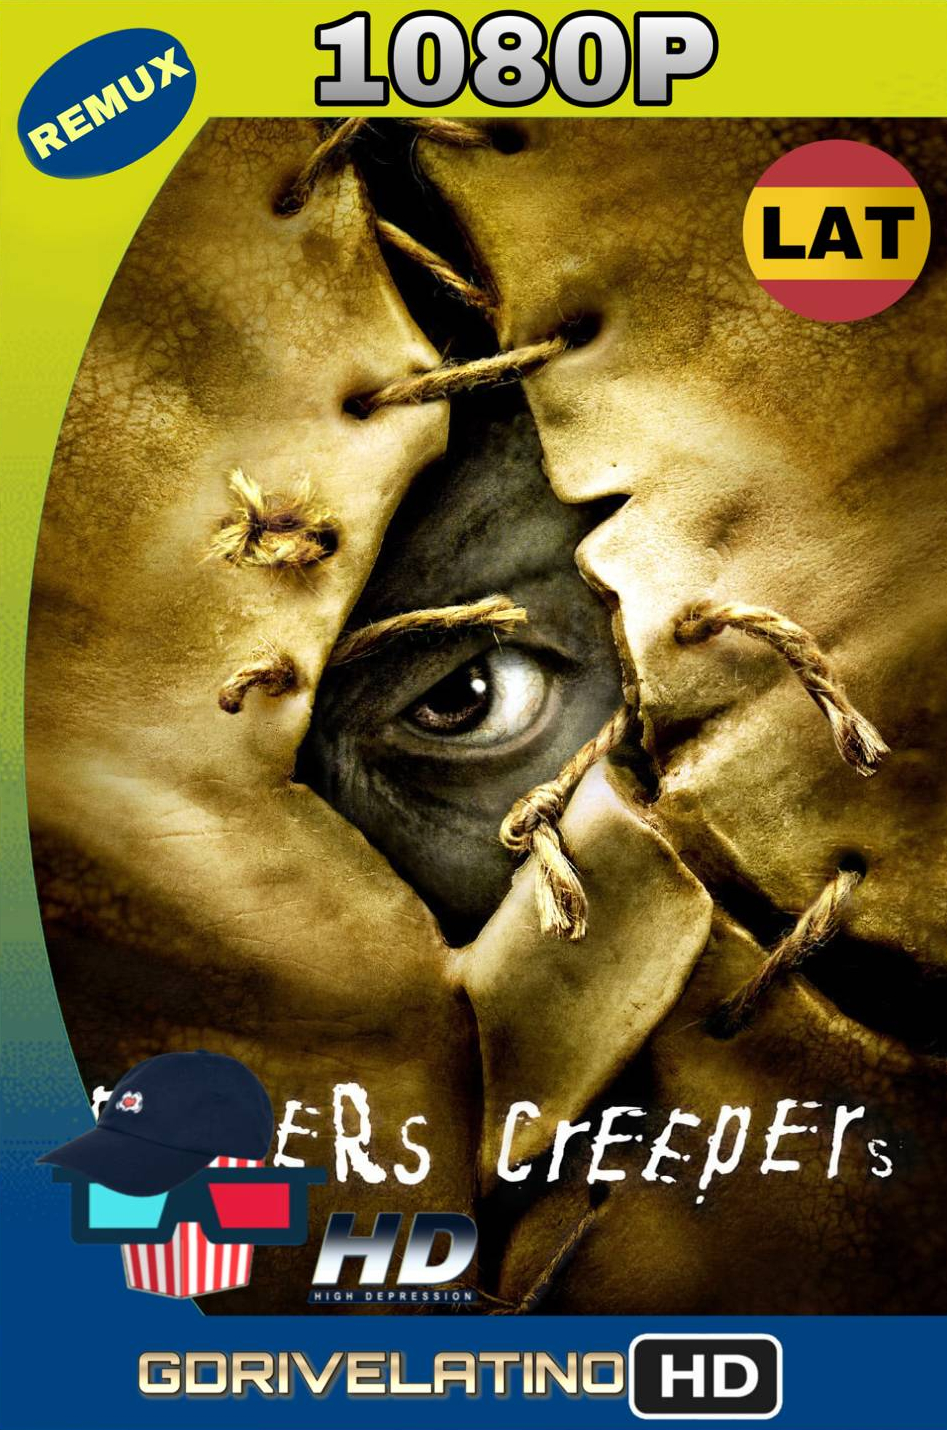 Jeepers Creepers (2001) BDRemux HD1080p Latino-Ingles MKV